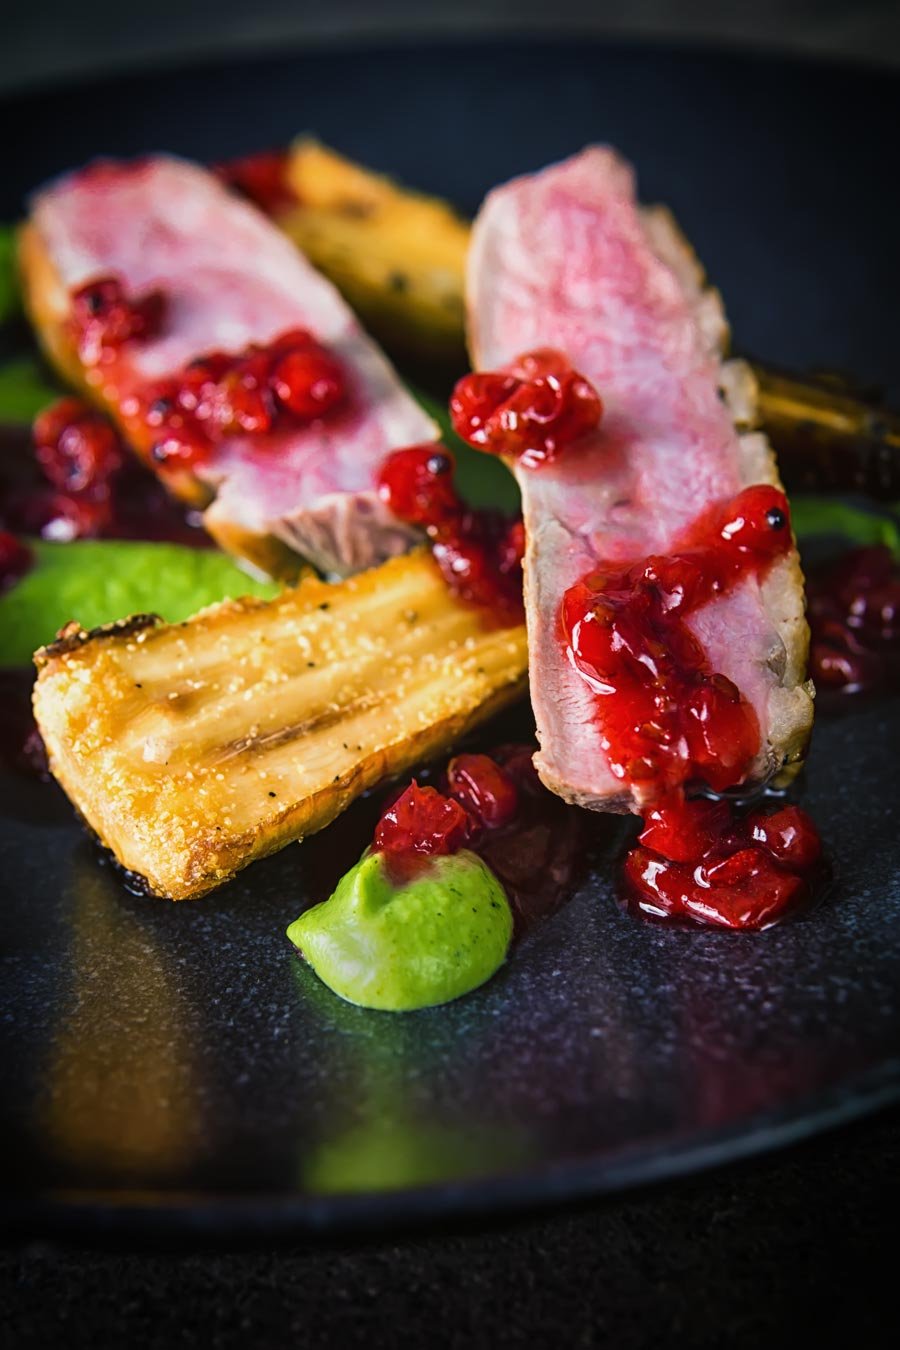 This pan fried duck breast is cooked using the cold pan method and is joined by honey roast parsnip, broccoli puree and a red currant sauce to form the perfect date night dinner!